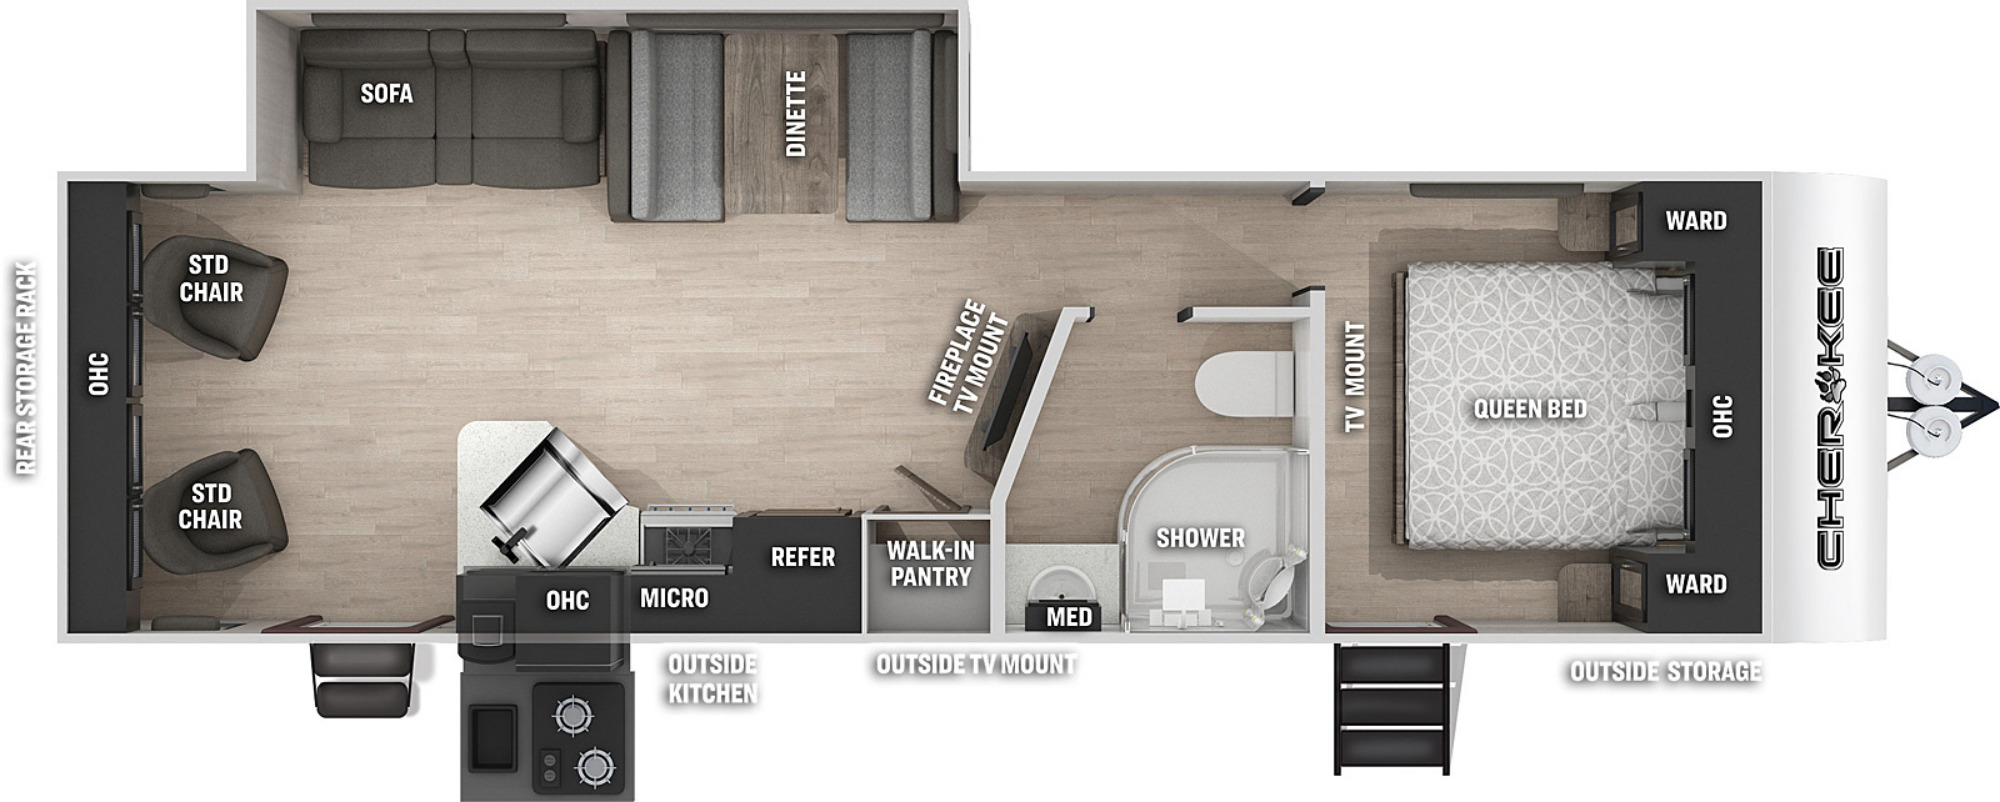 View Floor Plan for 2021 FOREST RIVER CHEROKEE 264RLW